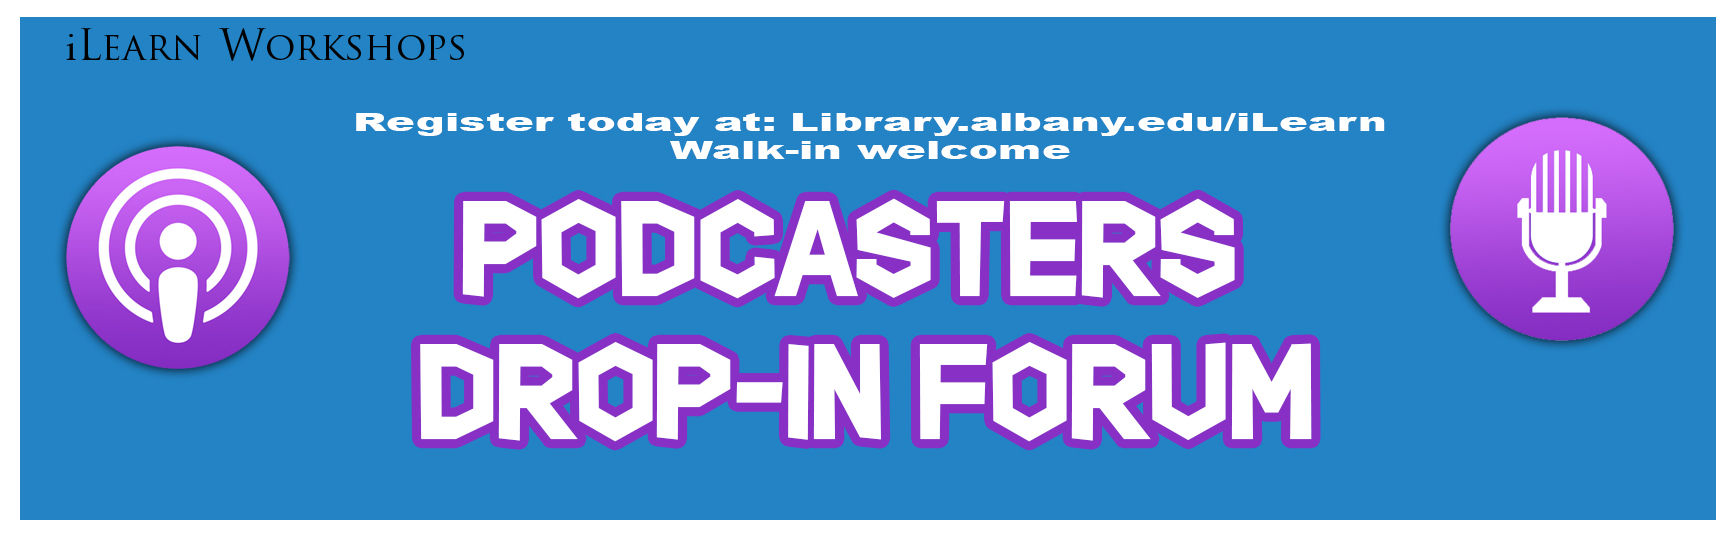 Podcasters Drop-In Forum